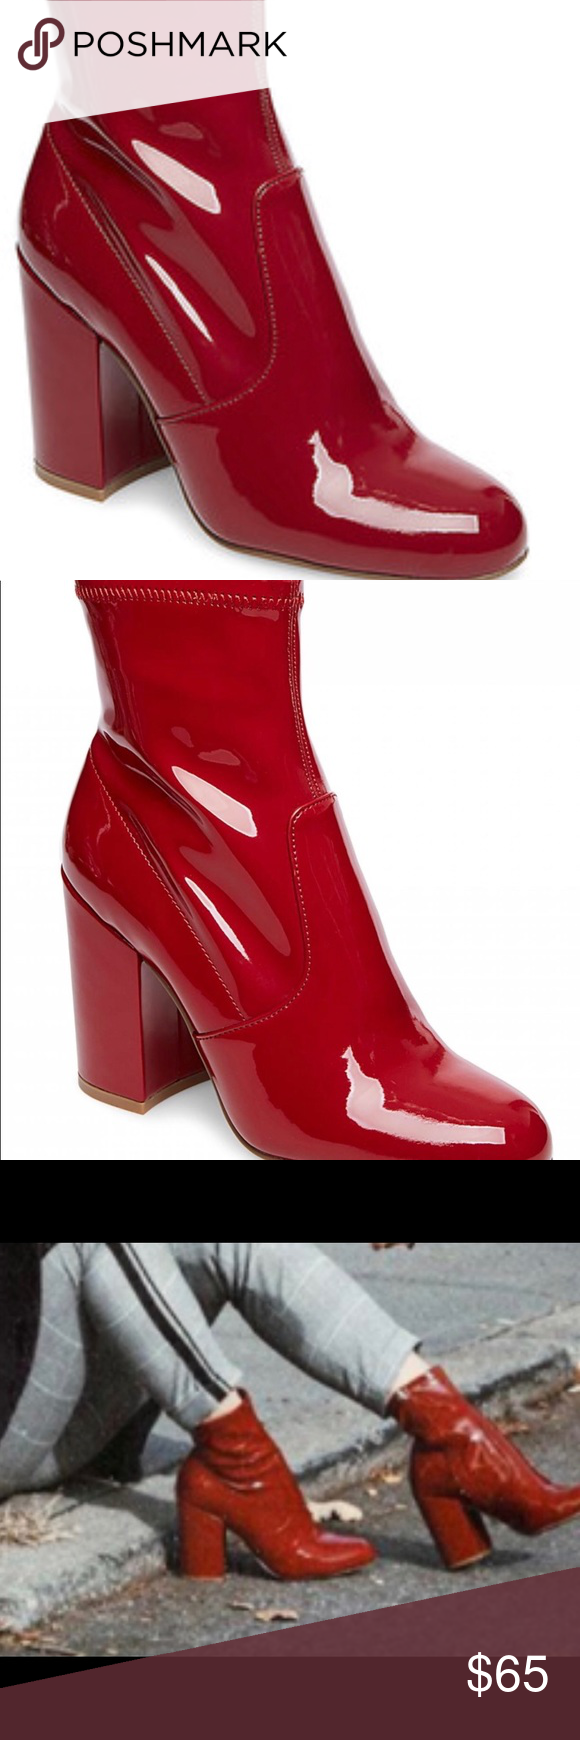 78e529a872a NWT STEVE MADDEN RED PATENT BOOT A flattering bootie that styles ...